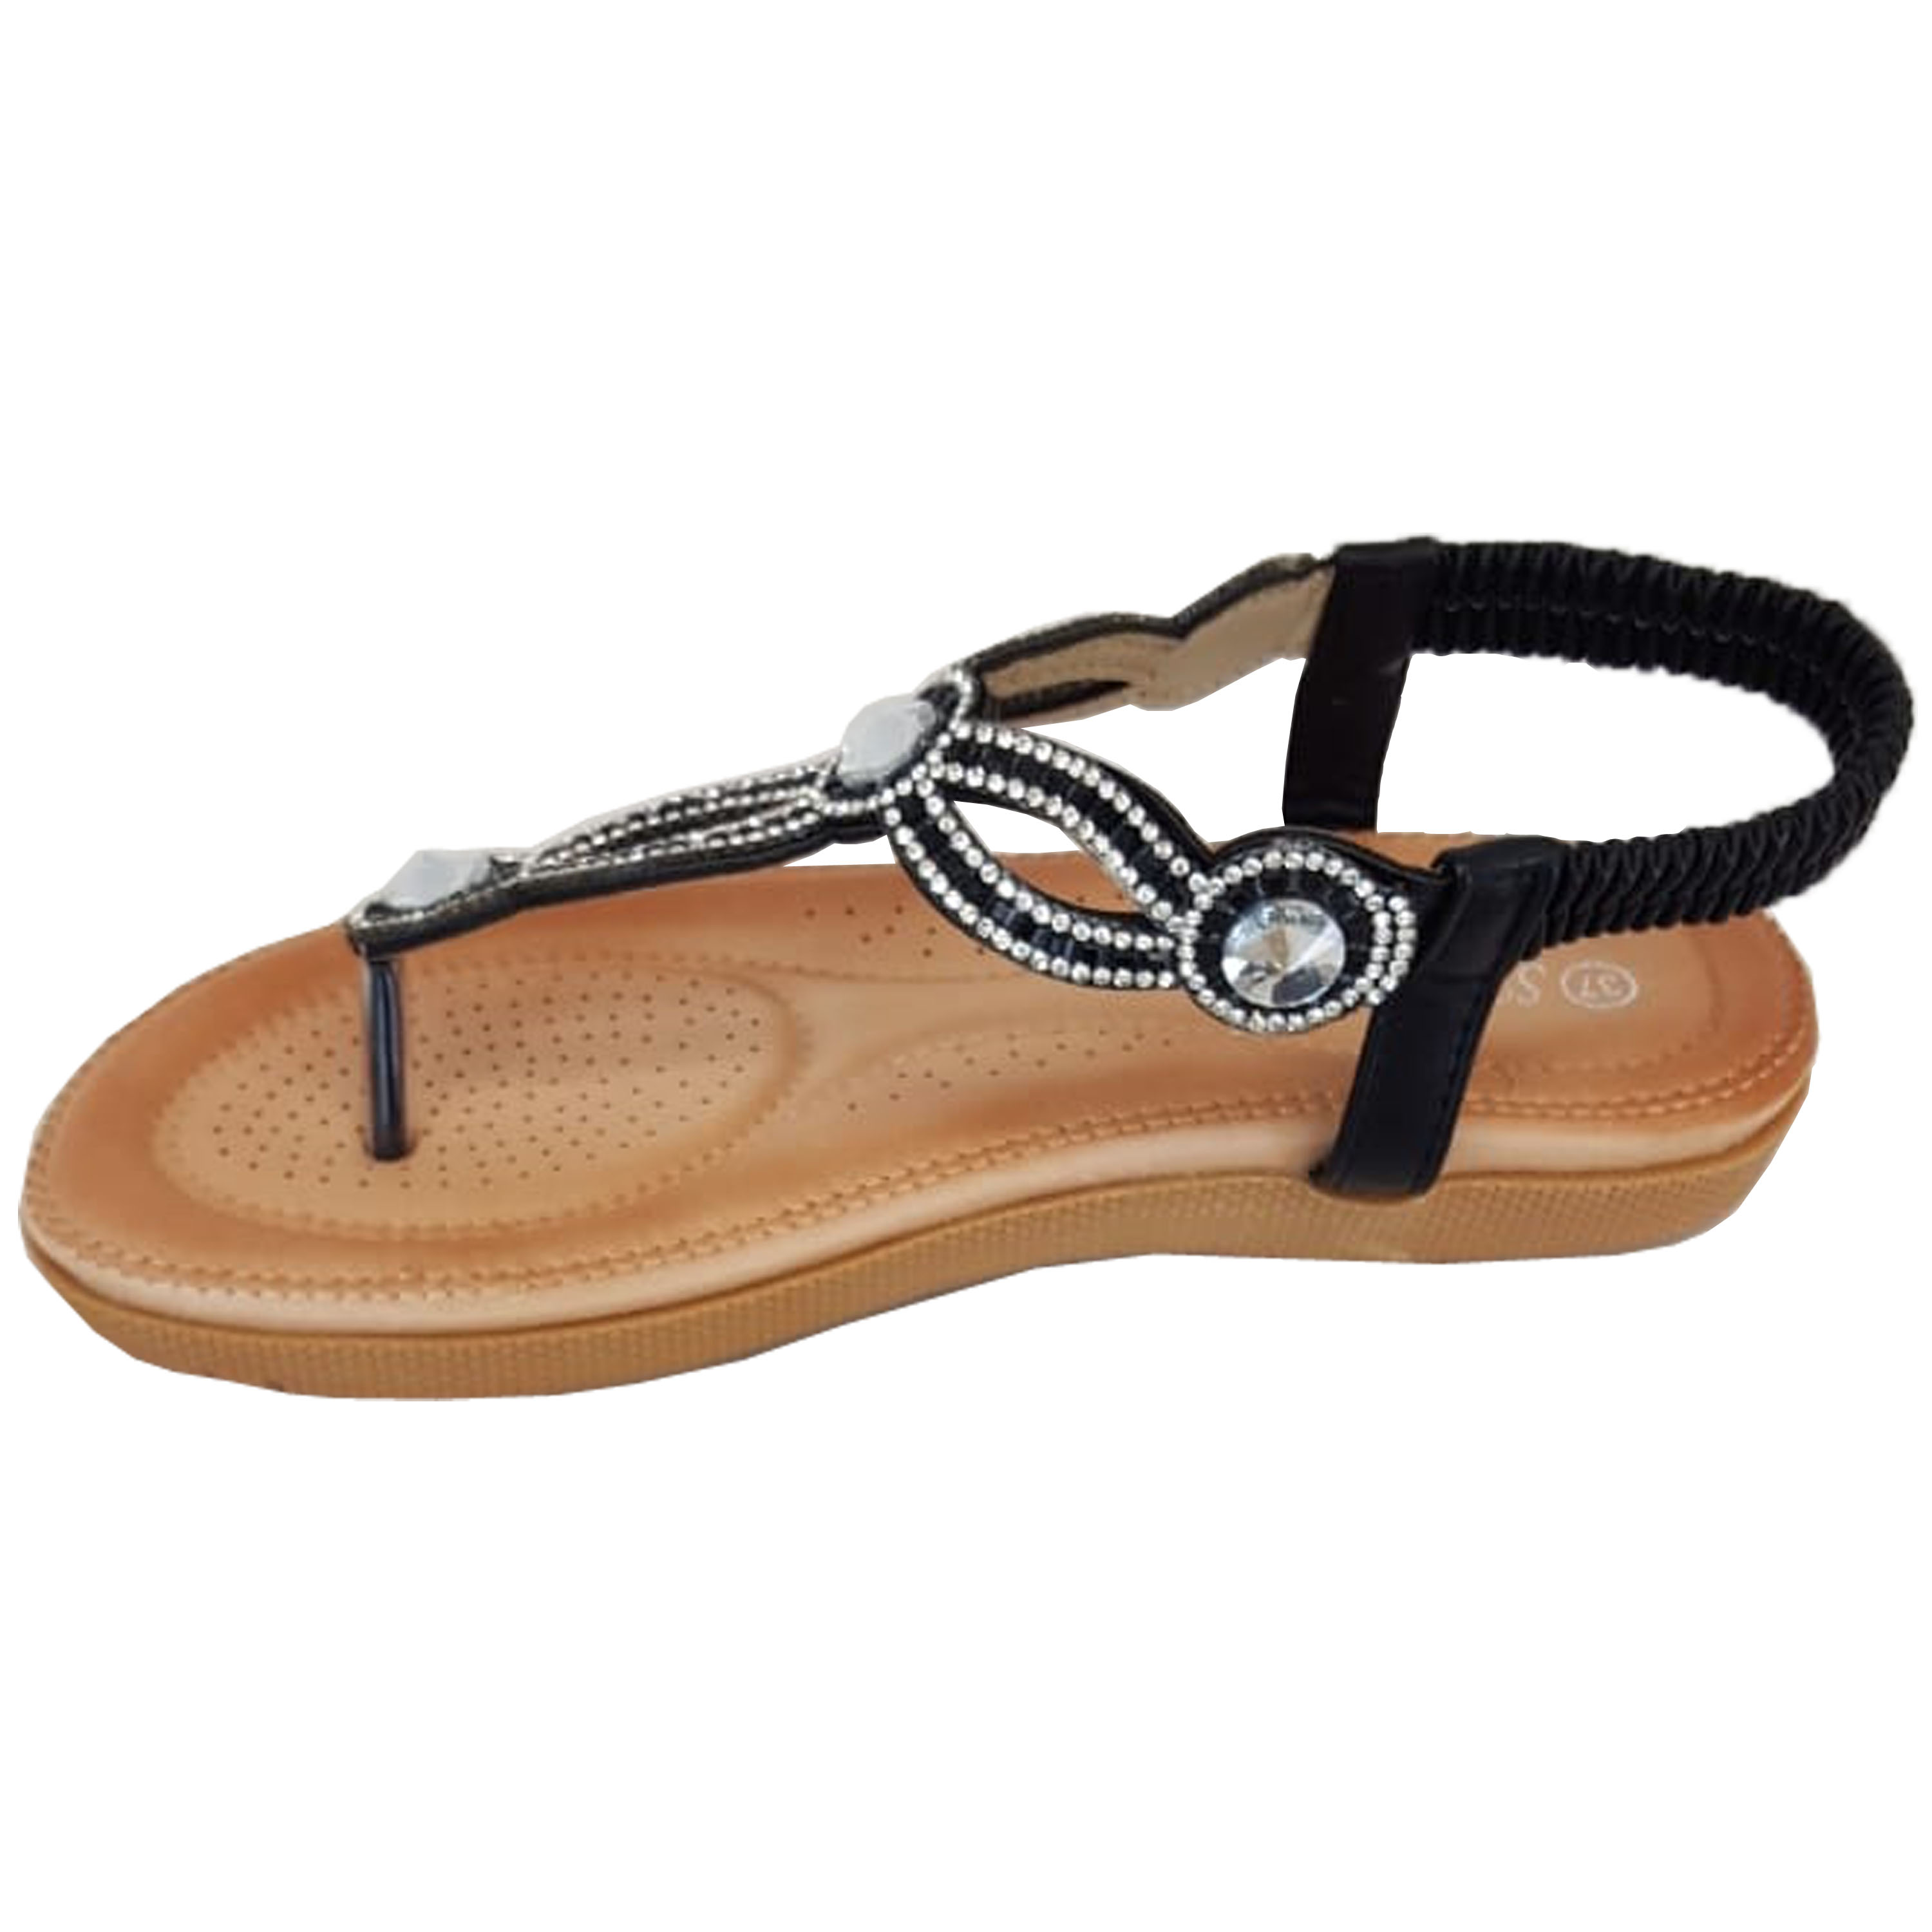 Ladies-Sandals-Womens-Diamante-Sling-Back-Open-Toe-Post-Shoes-Fashion-Summer-New thumbnail 3